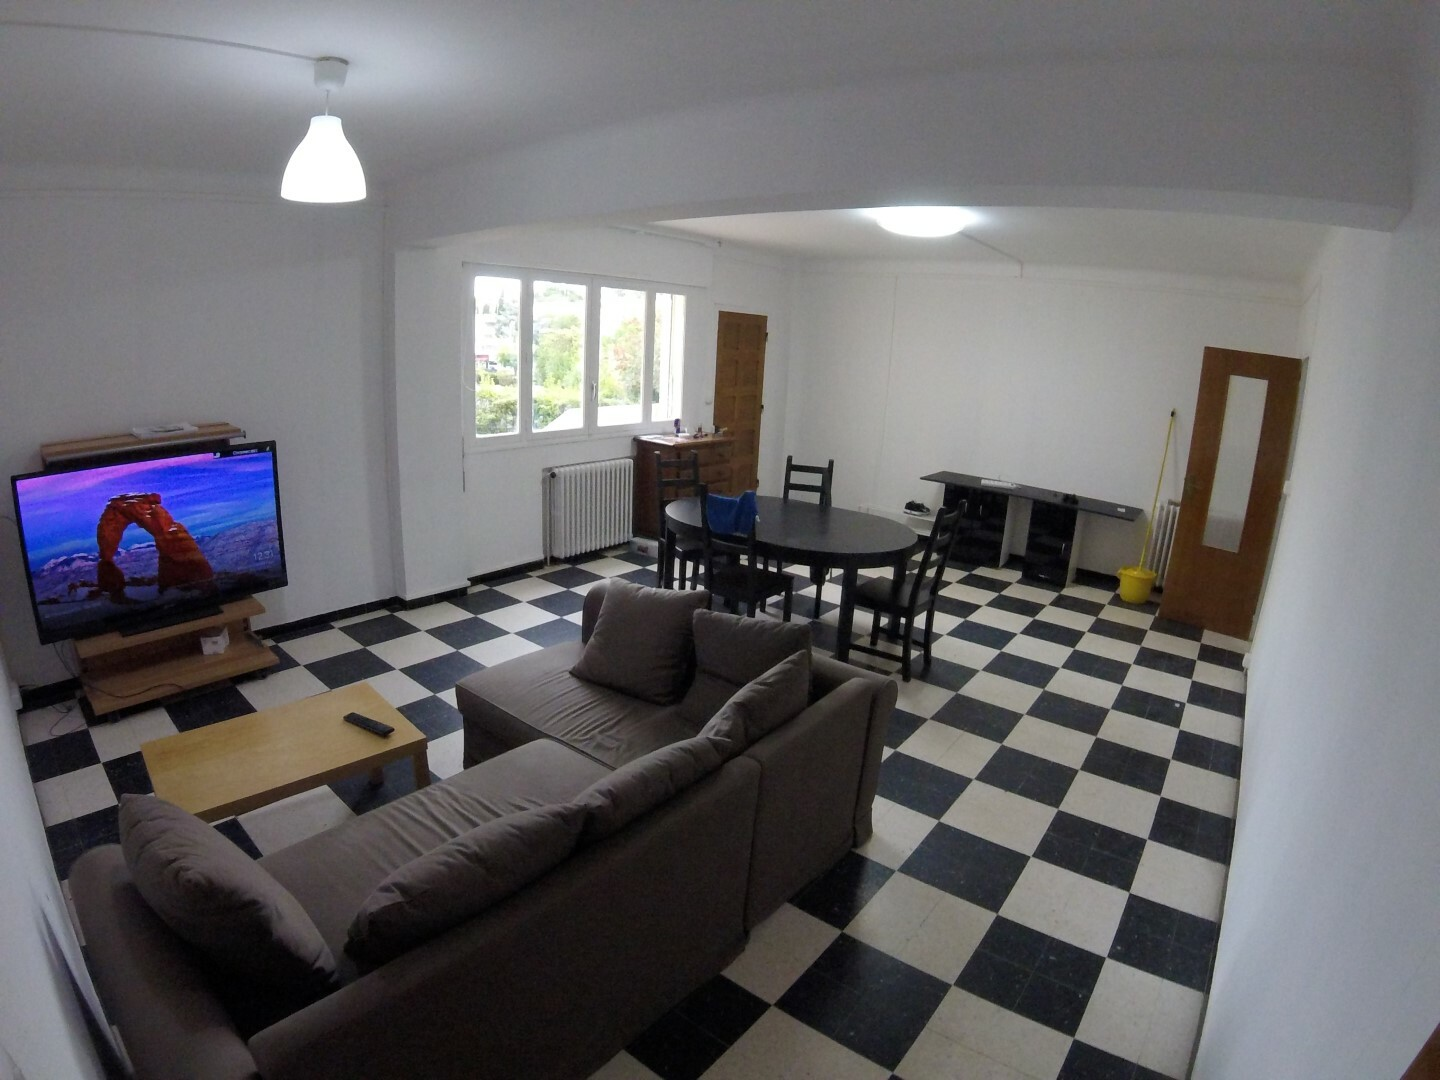 Montpellier City Rent 1 Bedroom In House. From 135m2